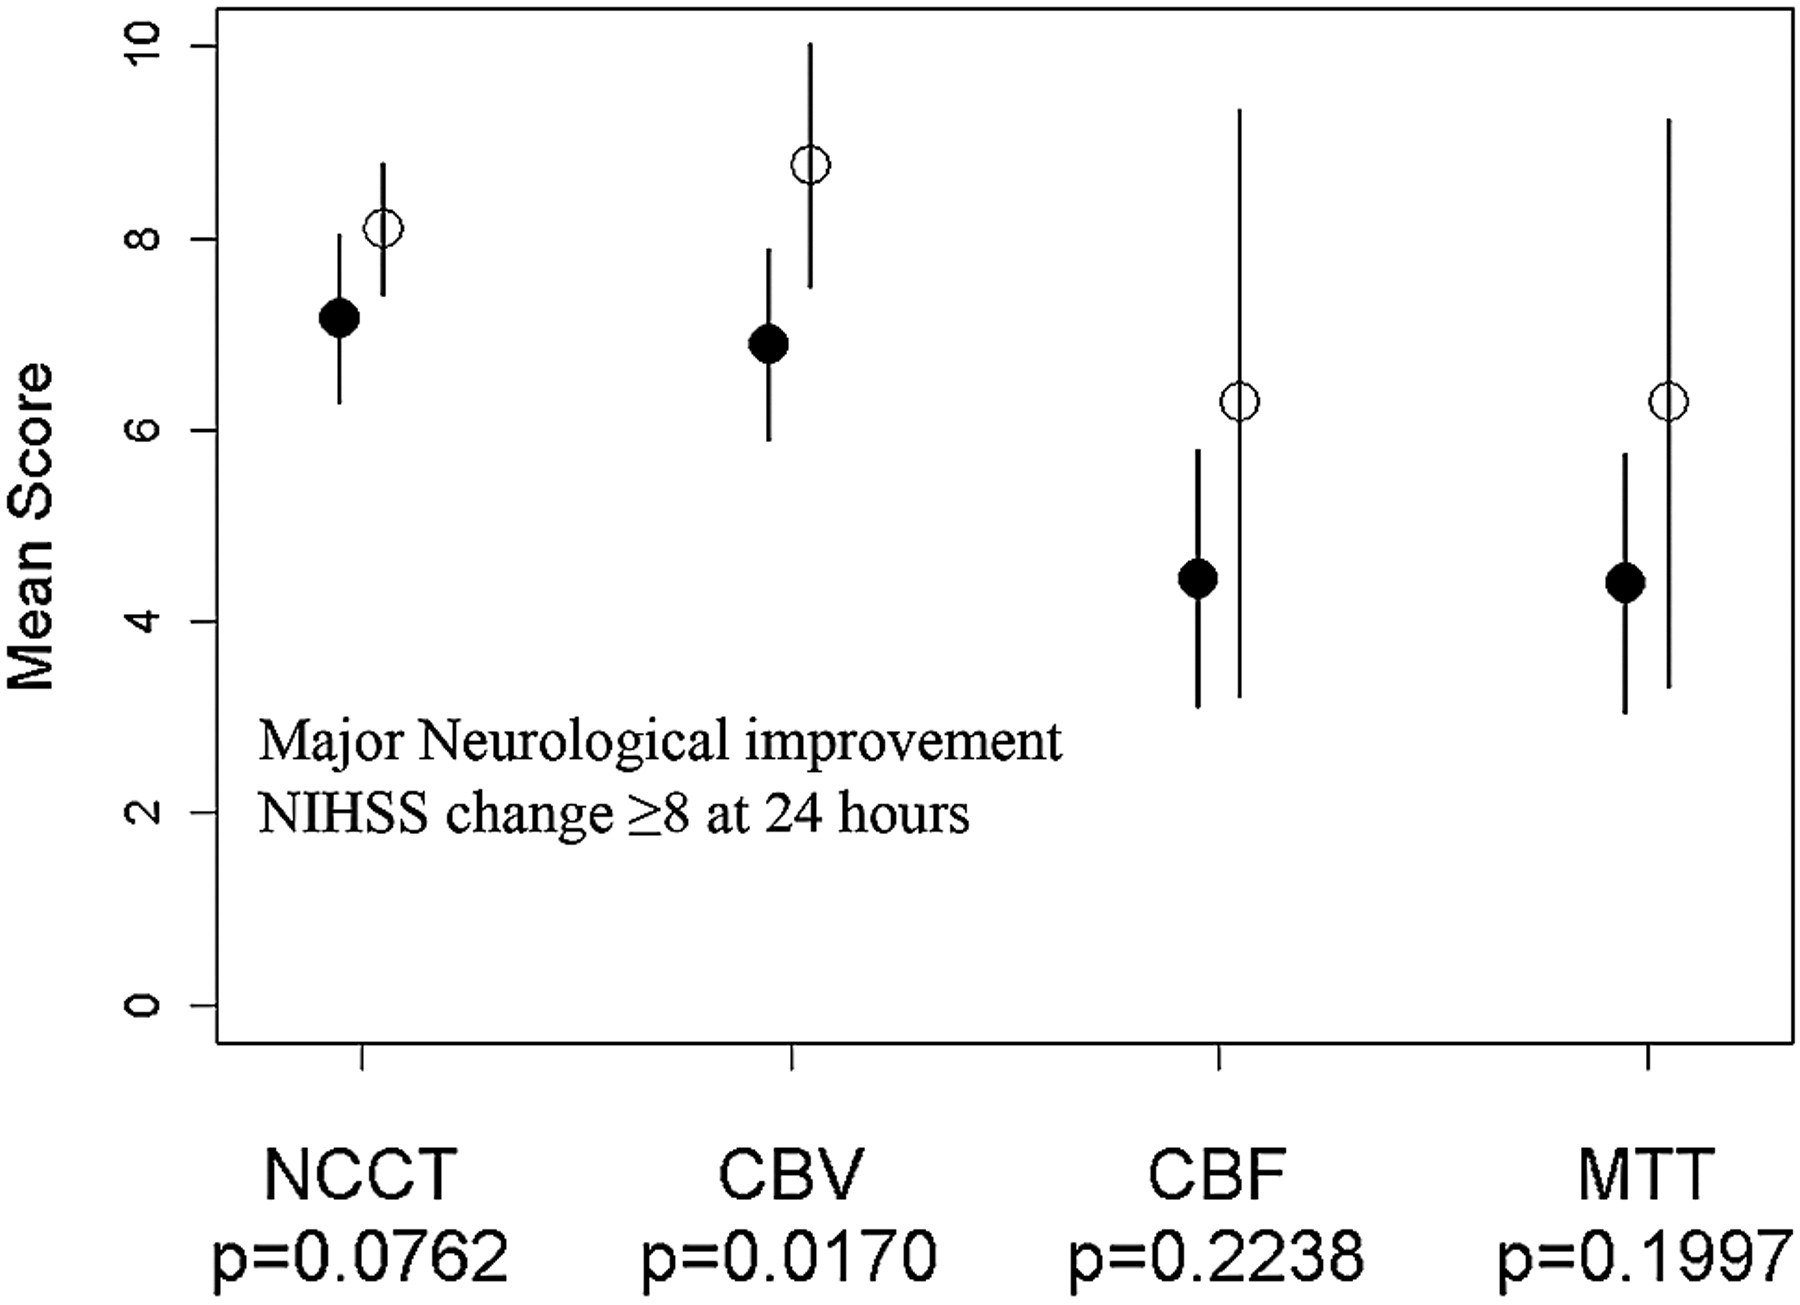 Alberta Stroke Program Early Ct Scoring Of Ct Perfusion In Early